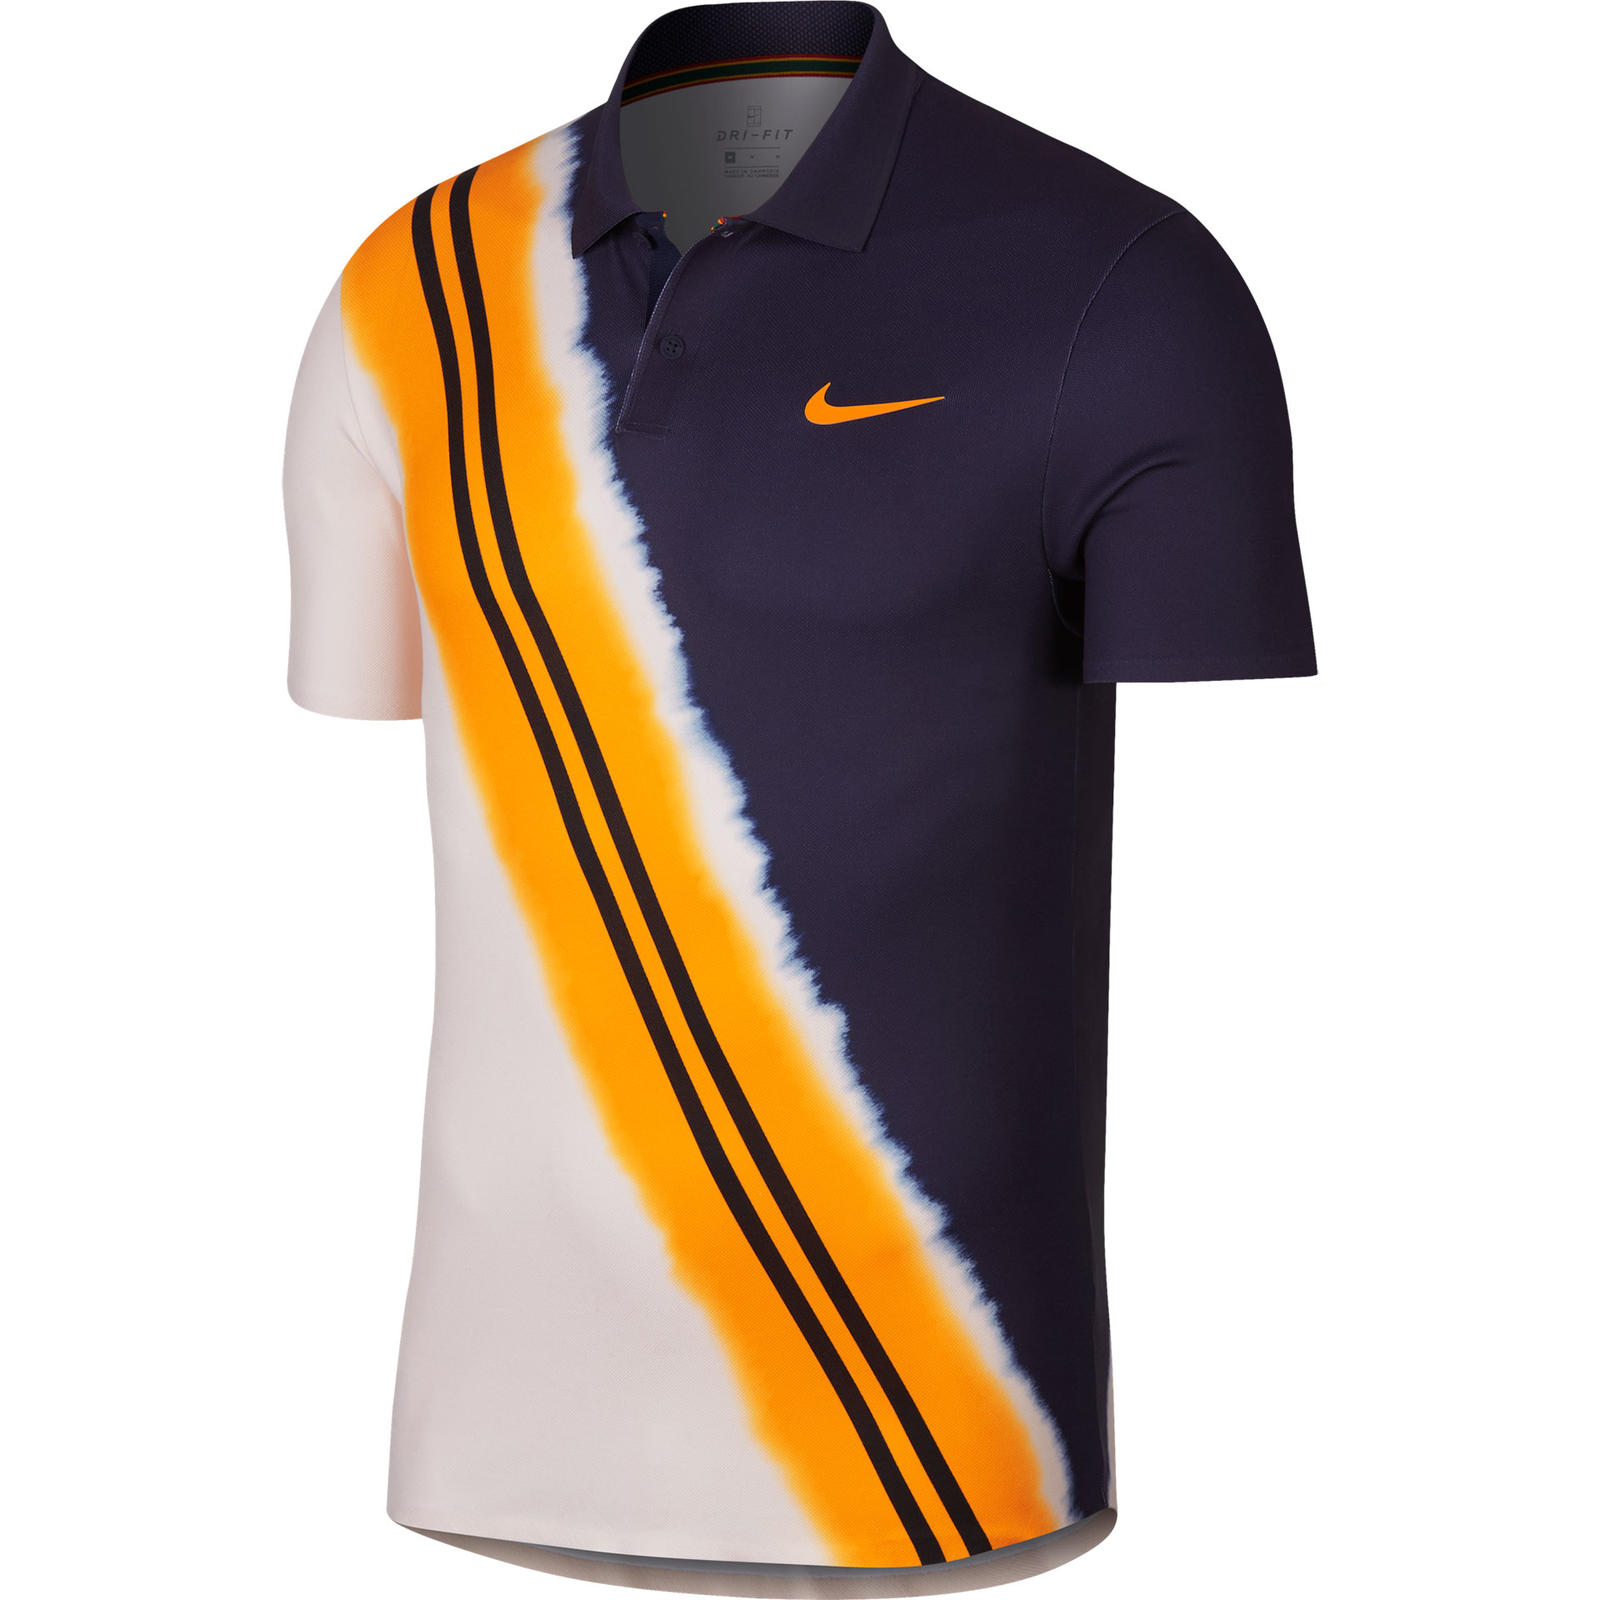 Nikecourt fall2018 934220 408 phsfh001 2000 re square 1600